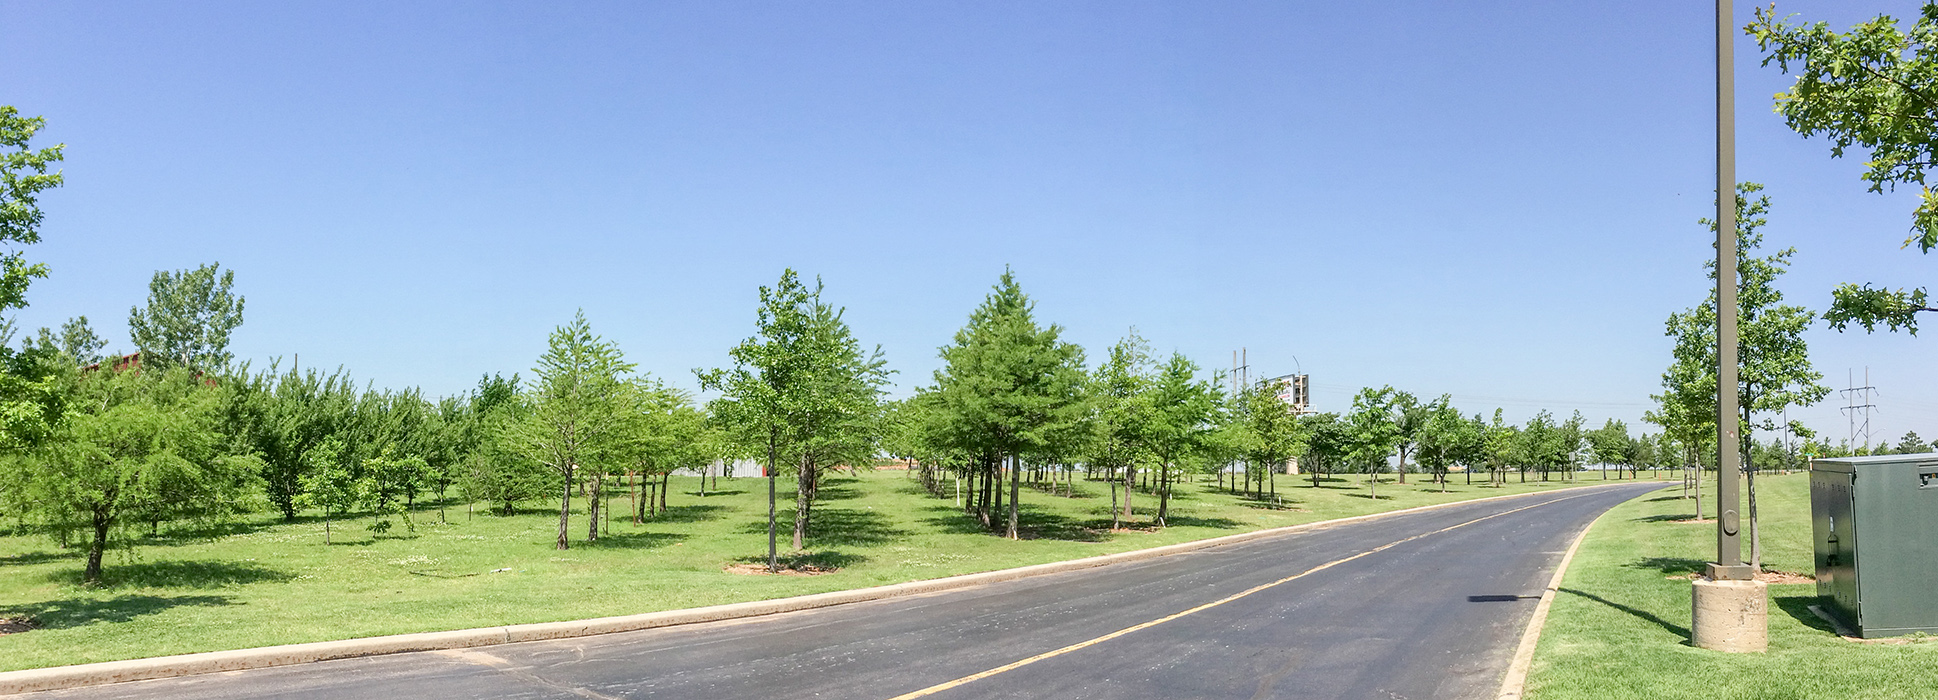 Tree farm leaves campus in the green